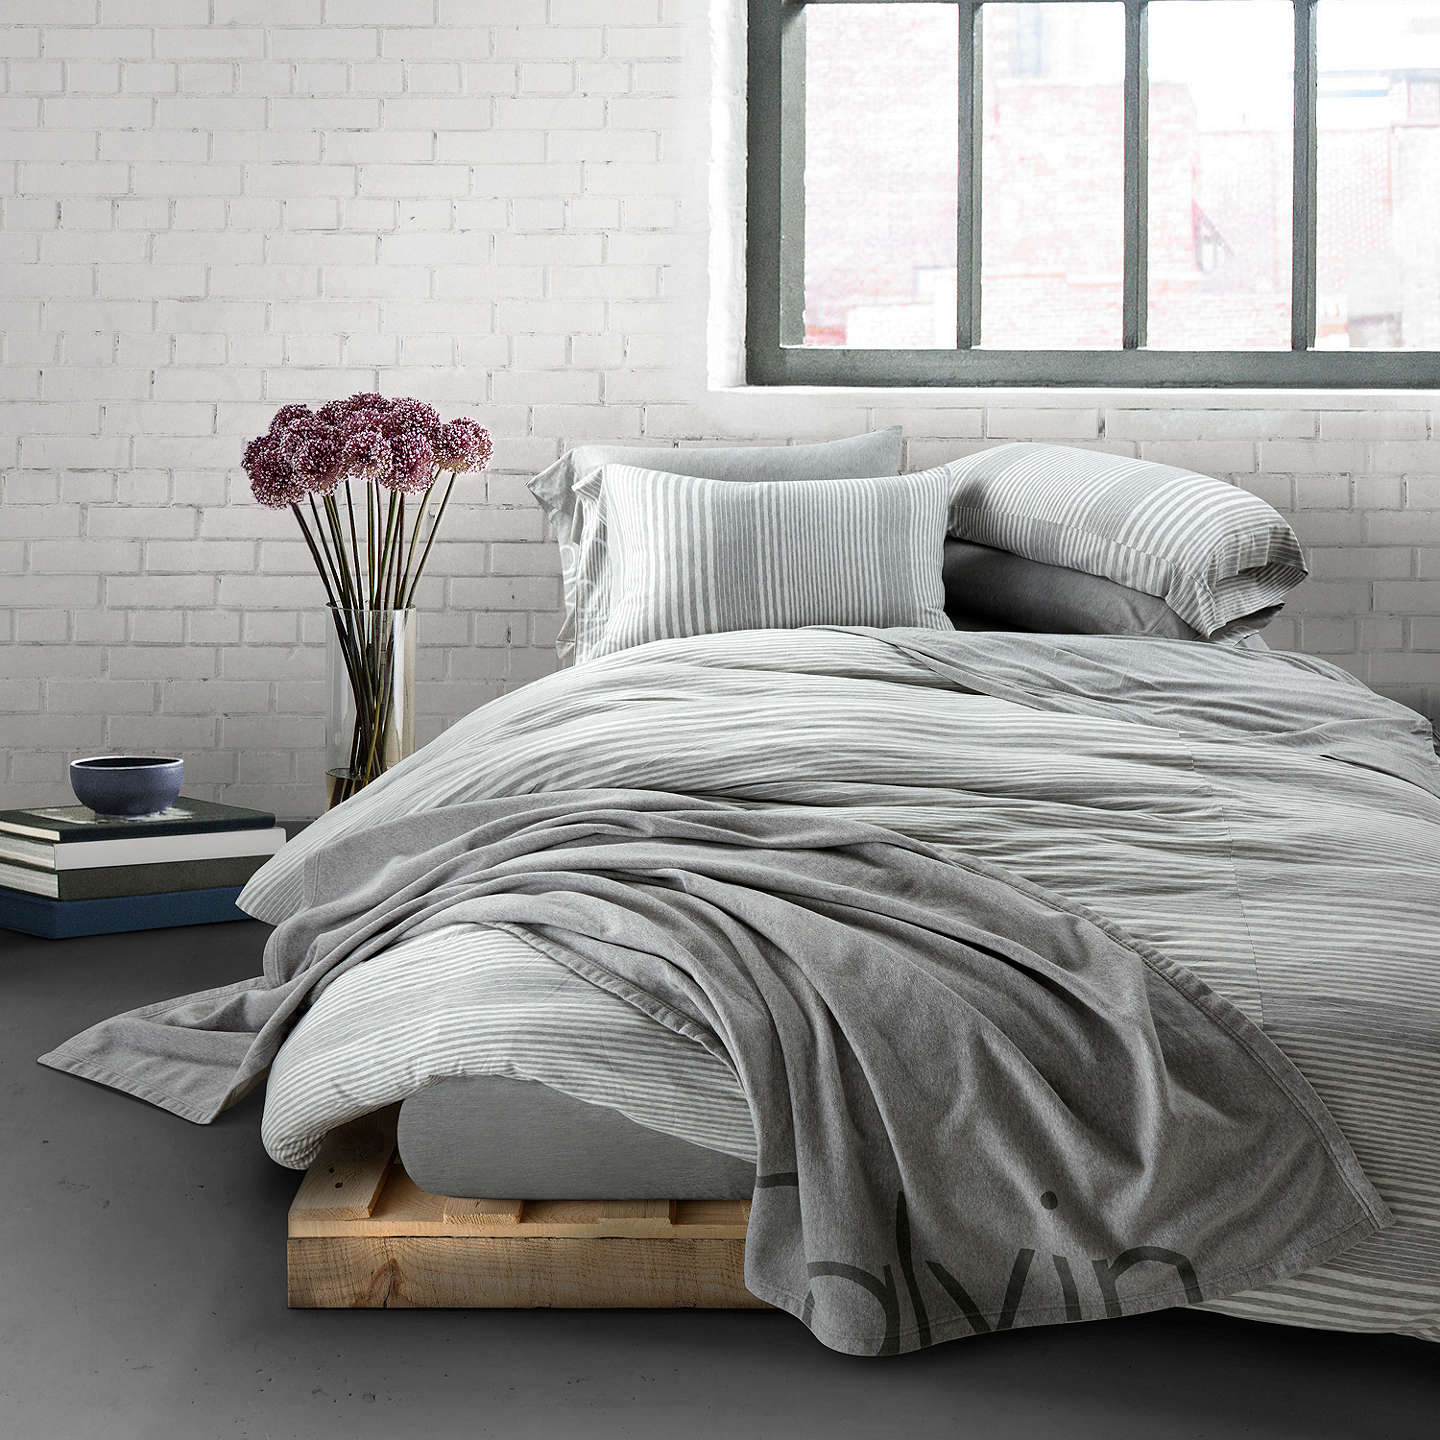 cotton resmode en hei usm modern klein sharpen pinstripe trilin qlt calvin duvet pulse bed fmt pucker in main wid op shadow cover bedding